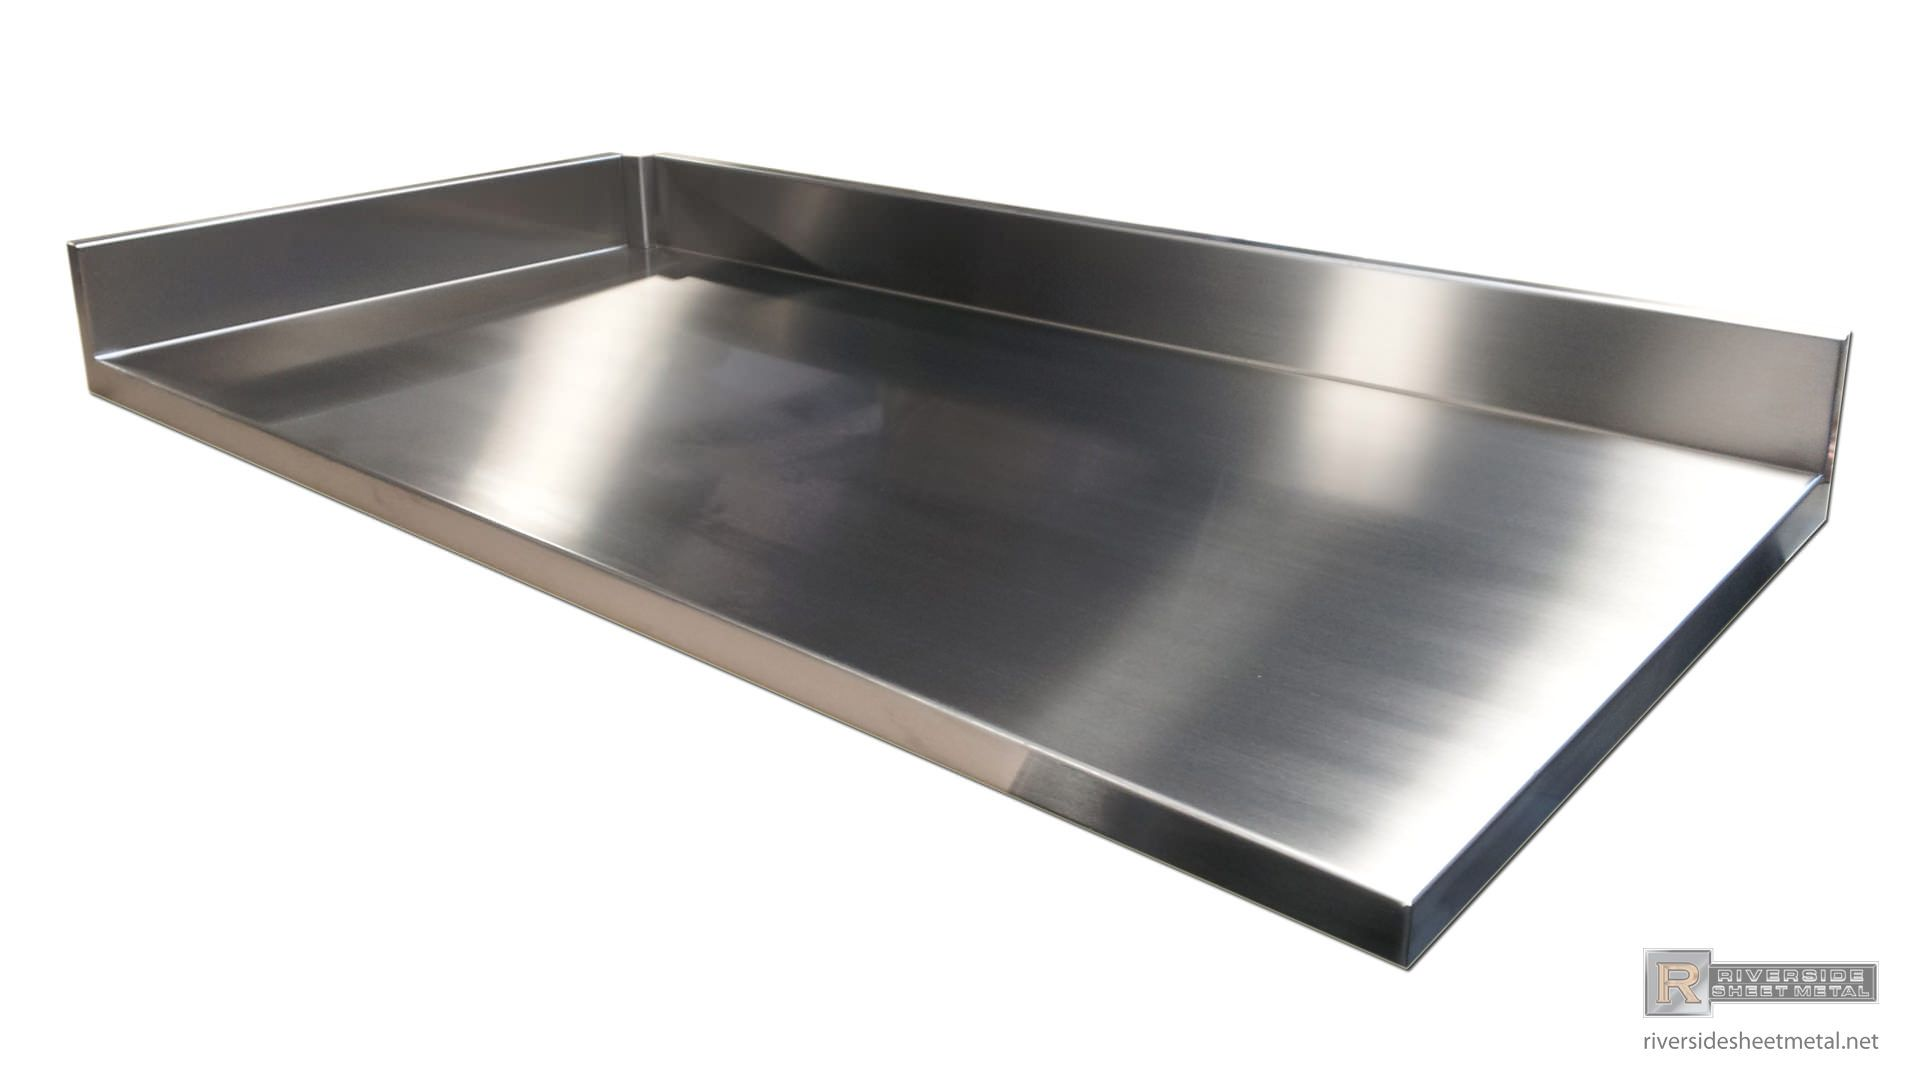 Custom Stainless Steel Number 4 Finish Counter Top With